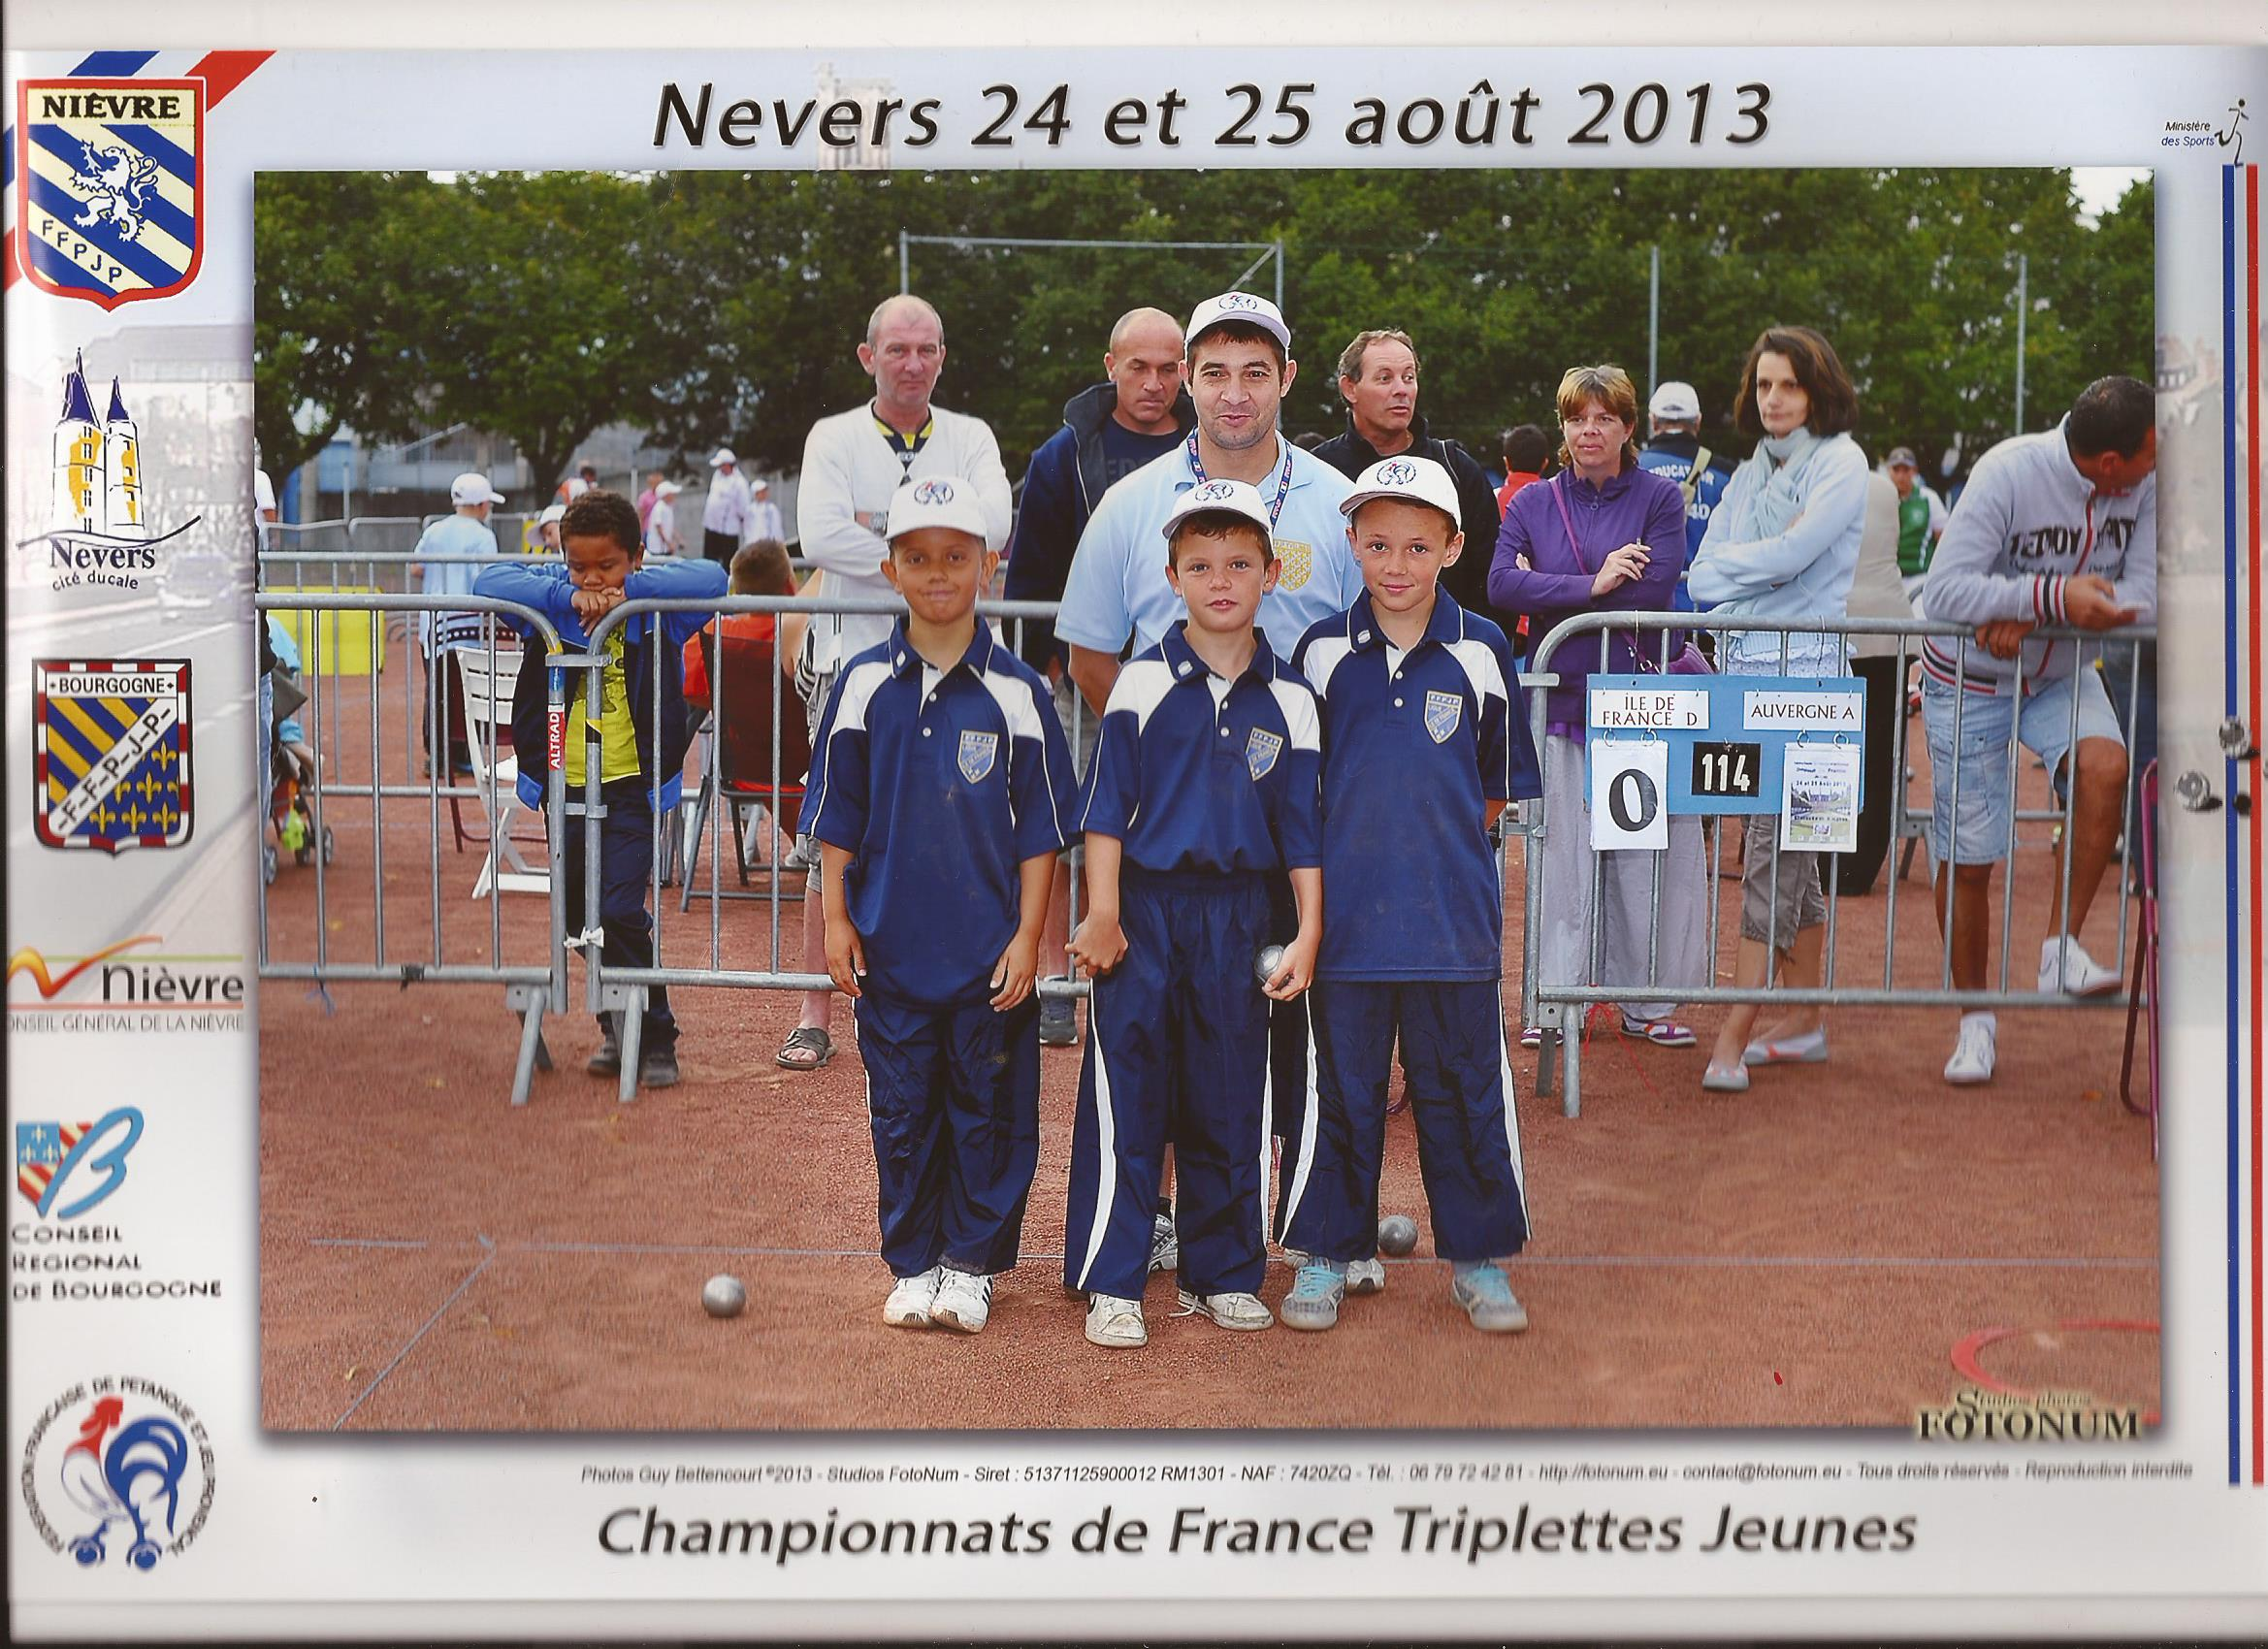 Championnat de France Minime- Nevers 2013